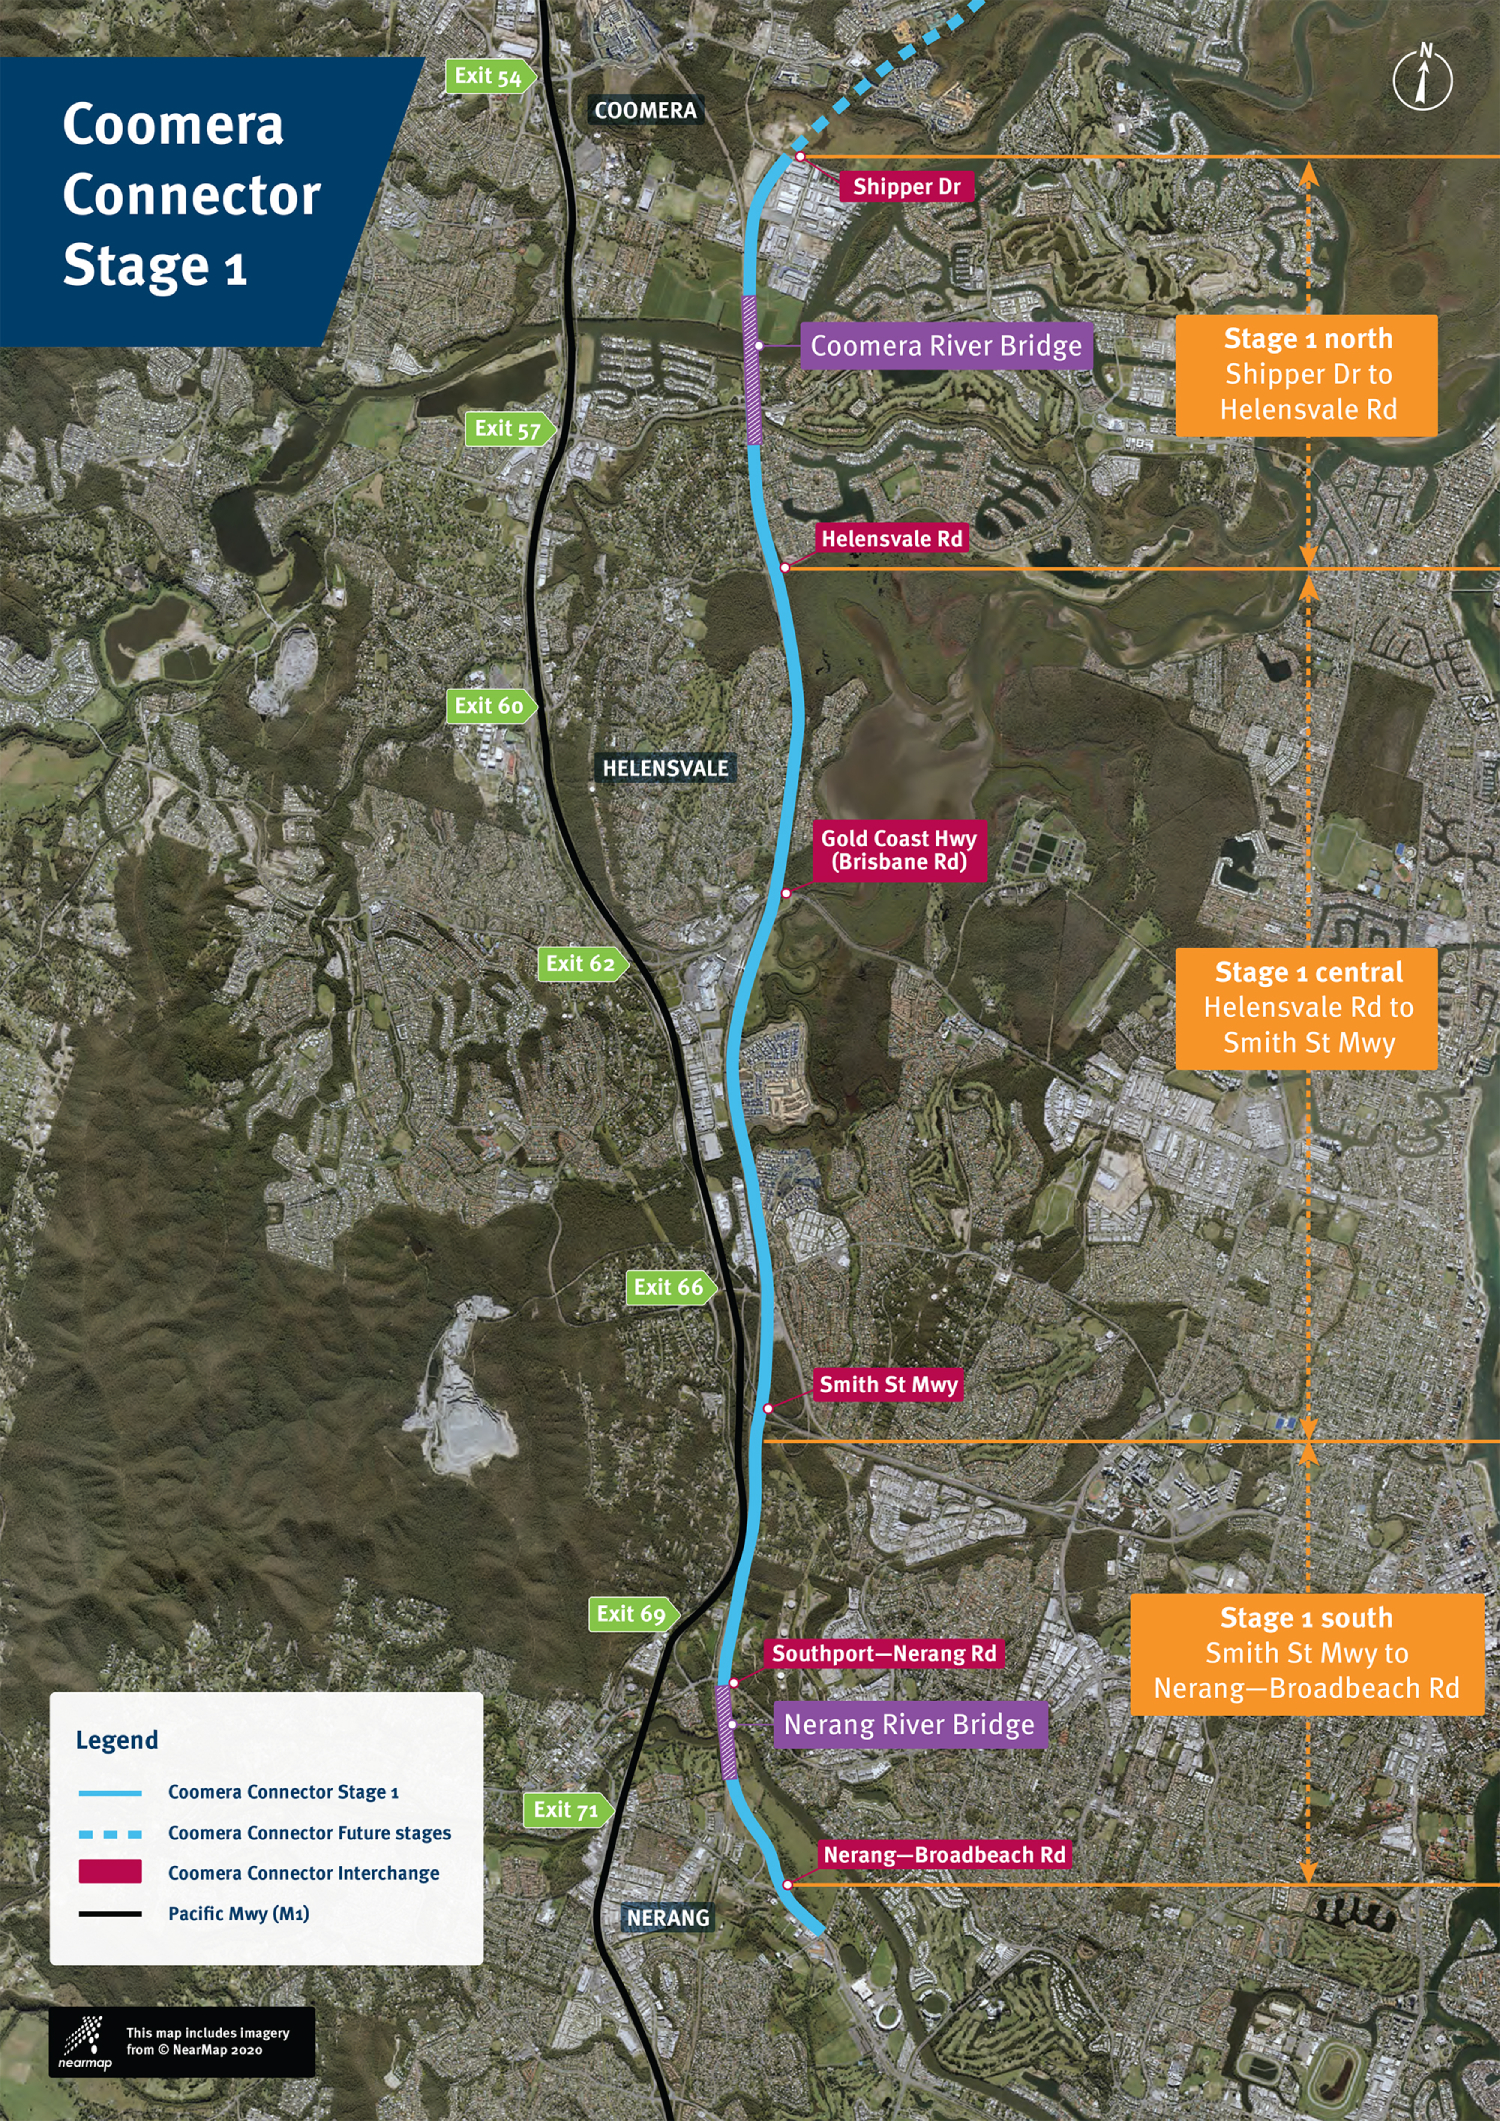 coomera-connector-stage-1-construction-packages-map-1220 (1)